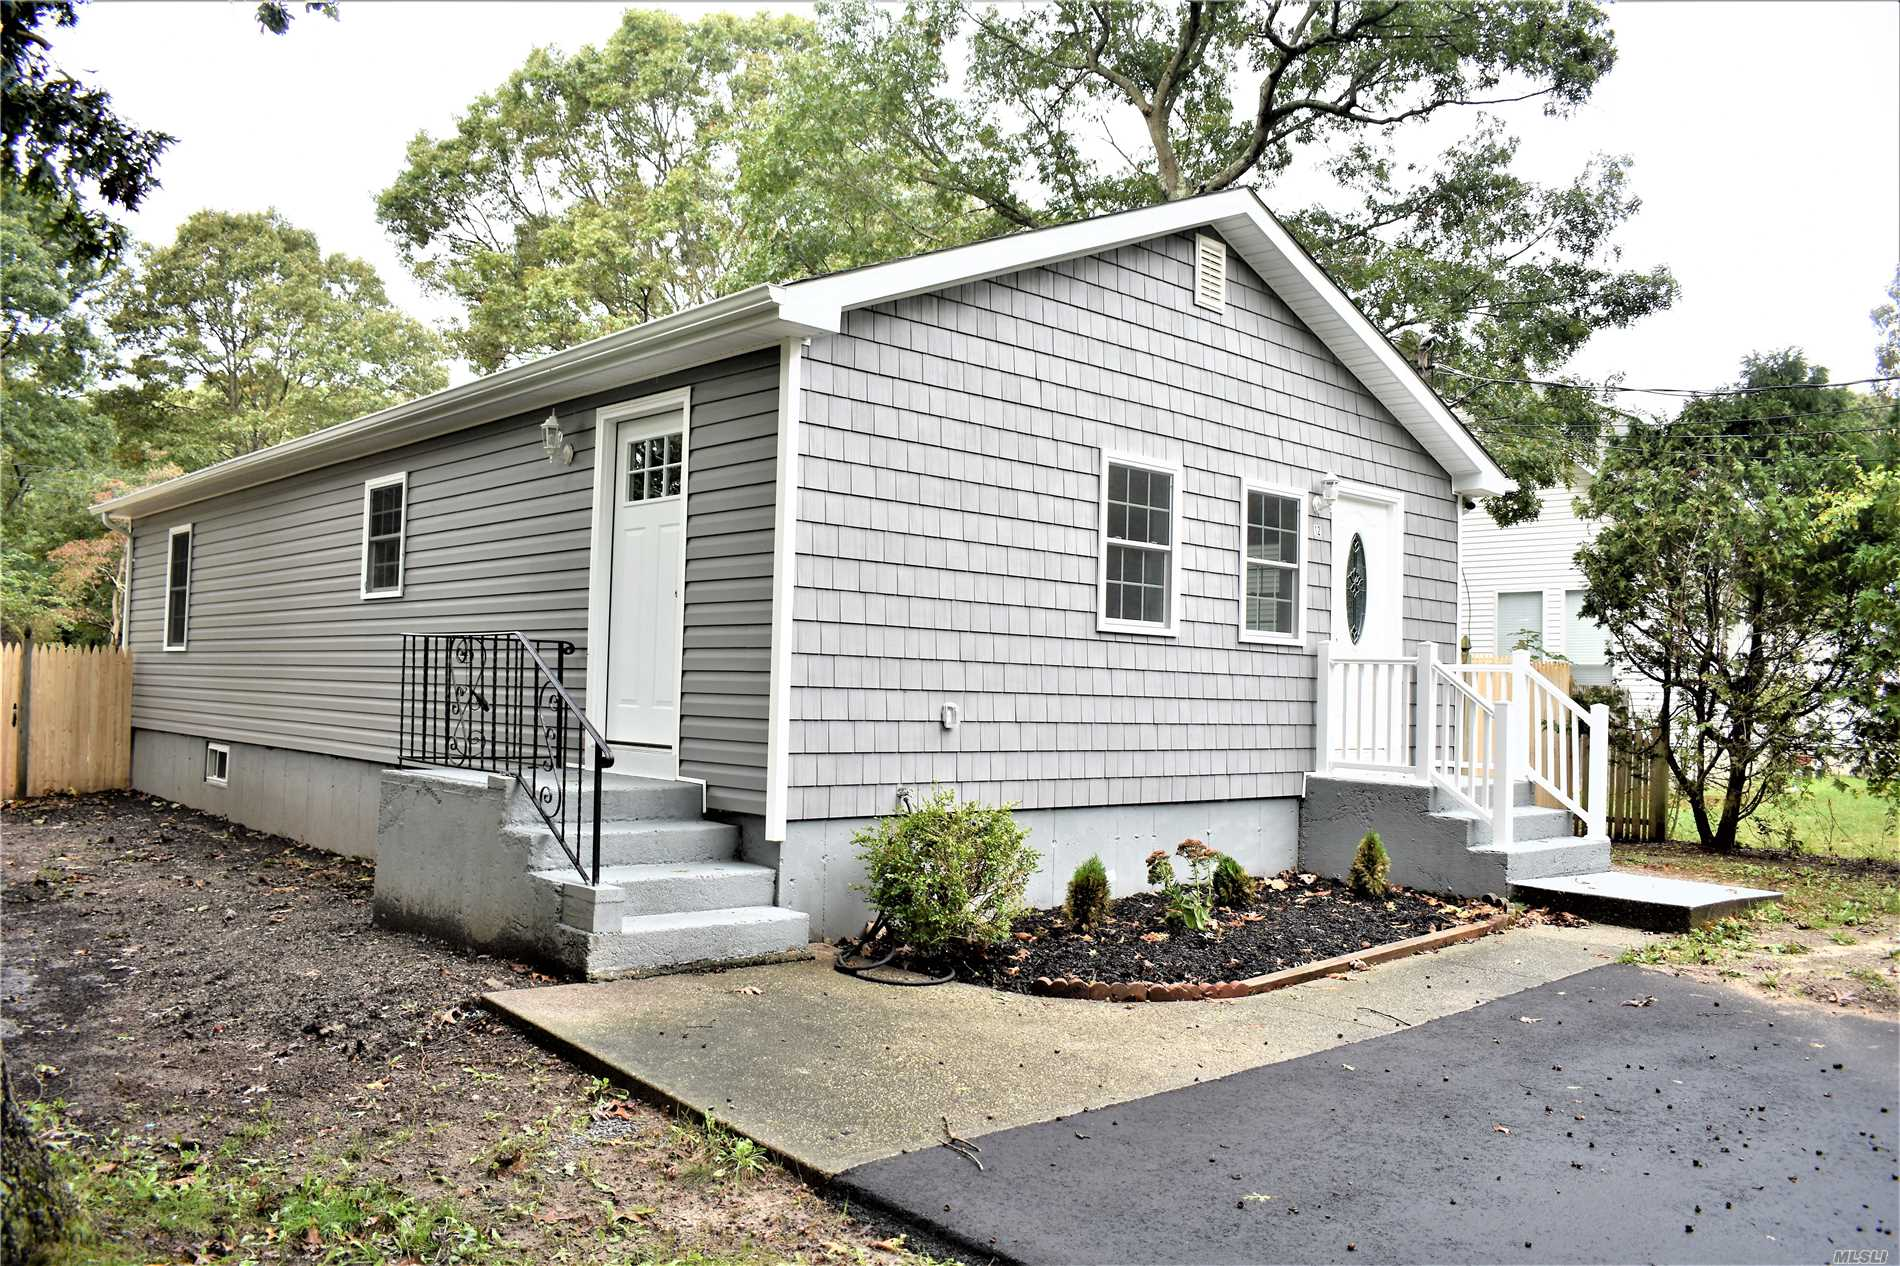 Beautifully Renovated Home With 3 Bed, 1 Bath, Brand New Kitchen, Ss Appliances, Granite, Cac, New Siding, New Roof, Hardwood Floors Throughout. And Much More